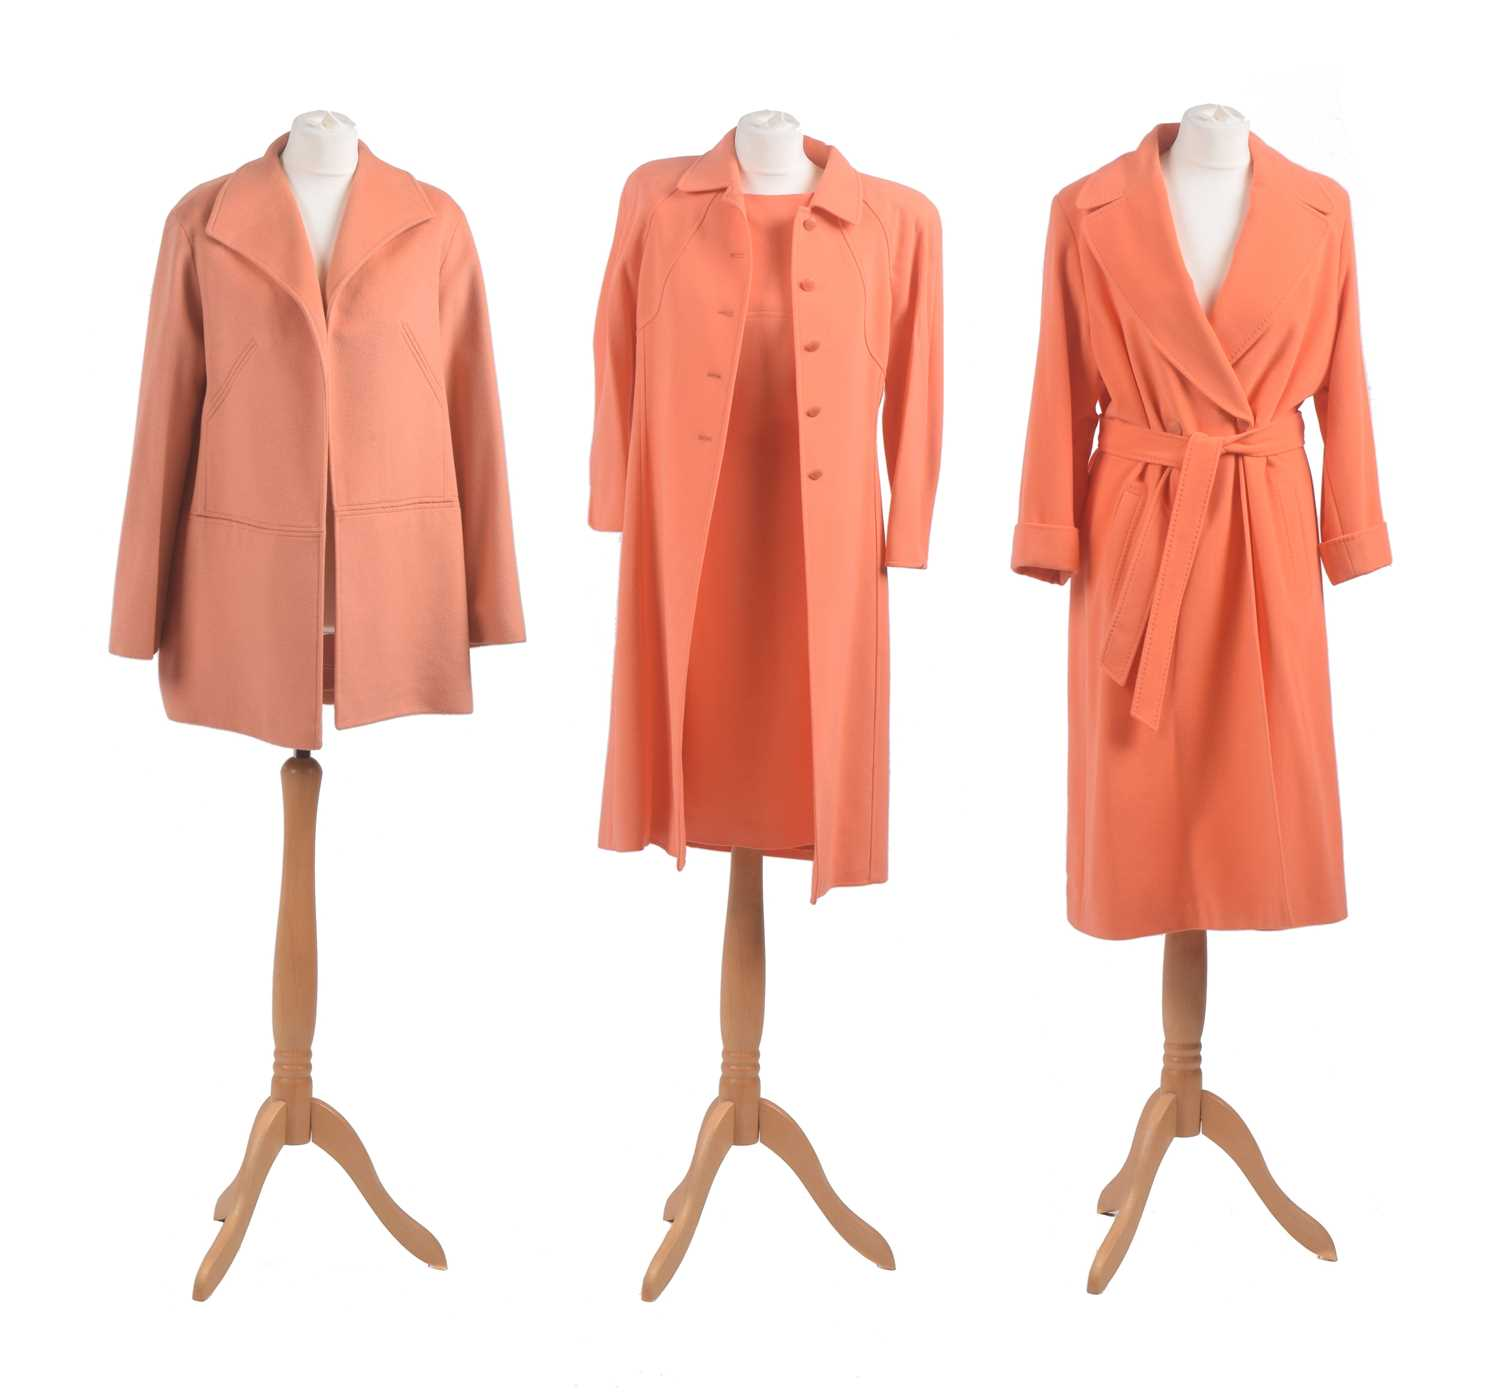 Lot Three orange designer coats